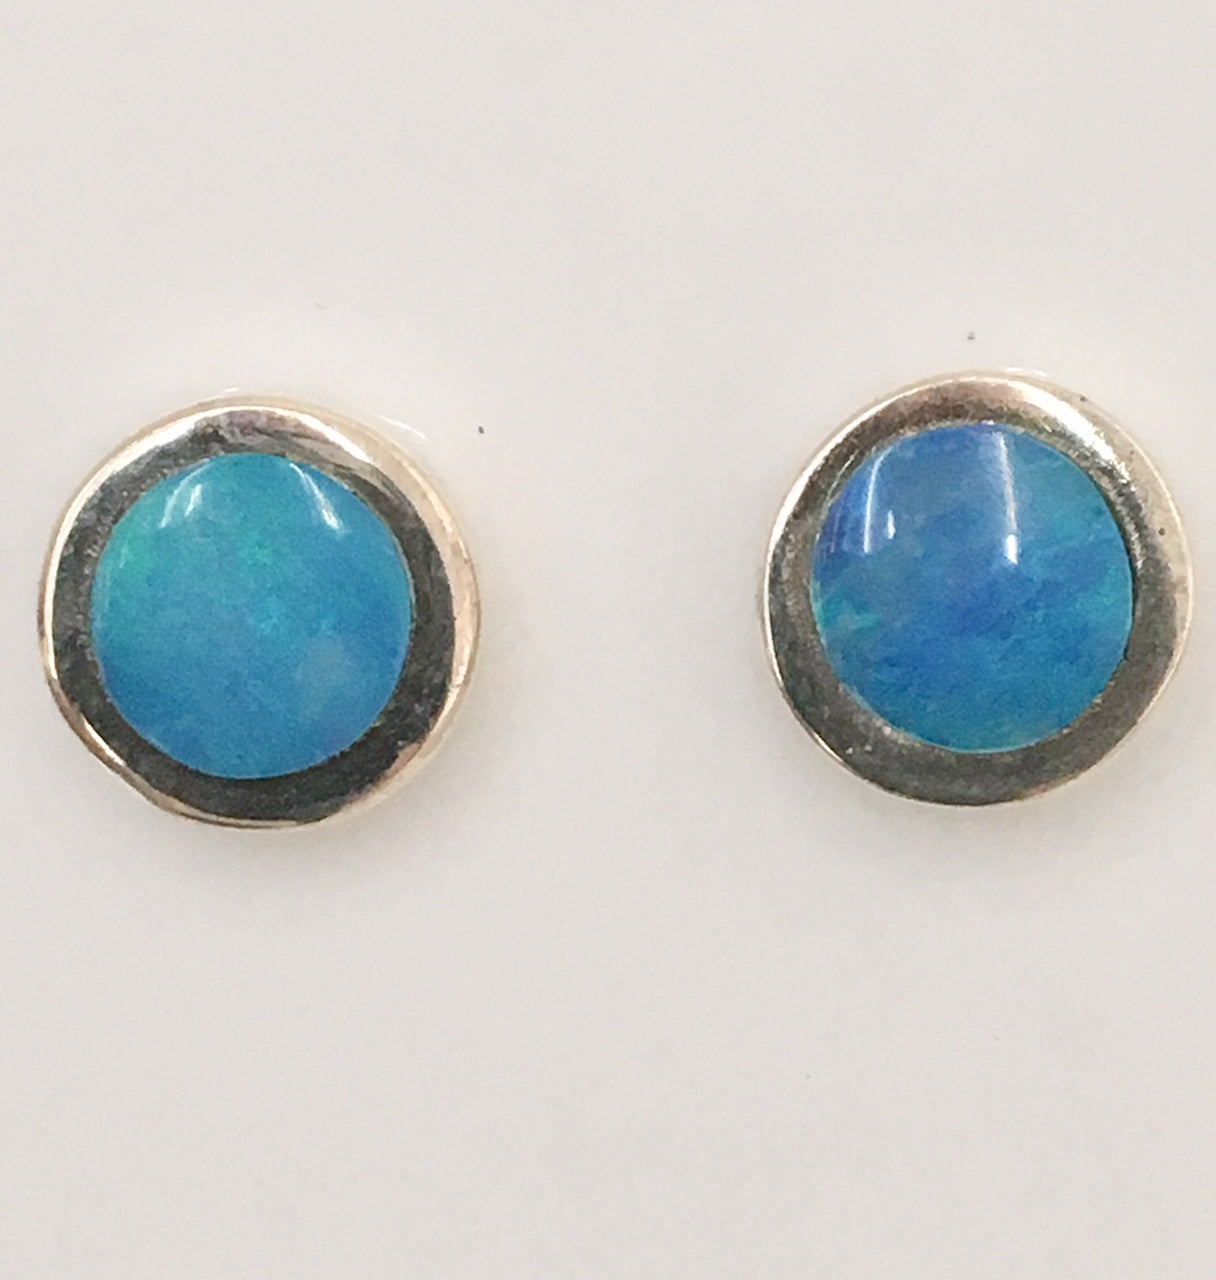 Green Blue stud earrings